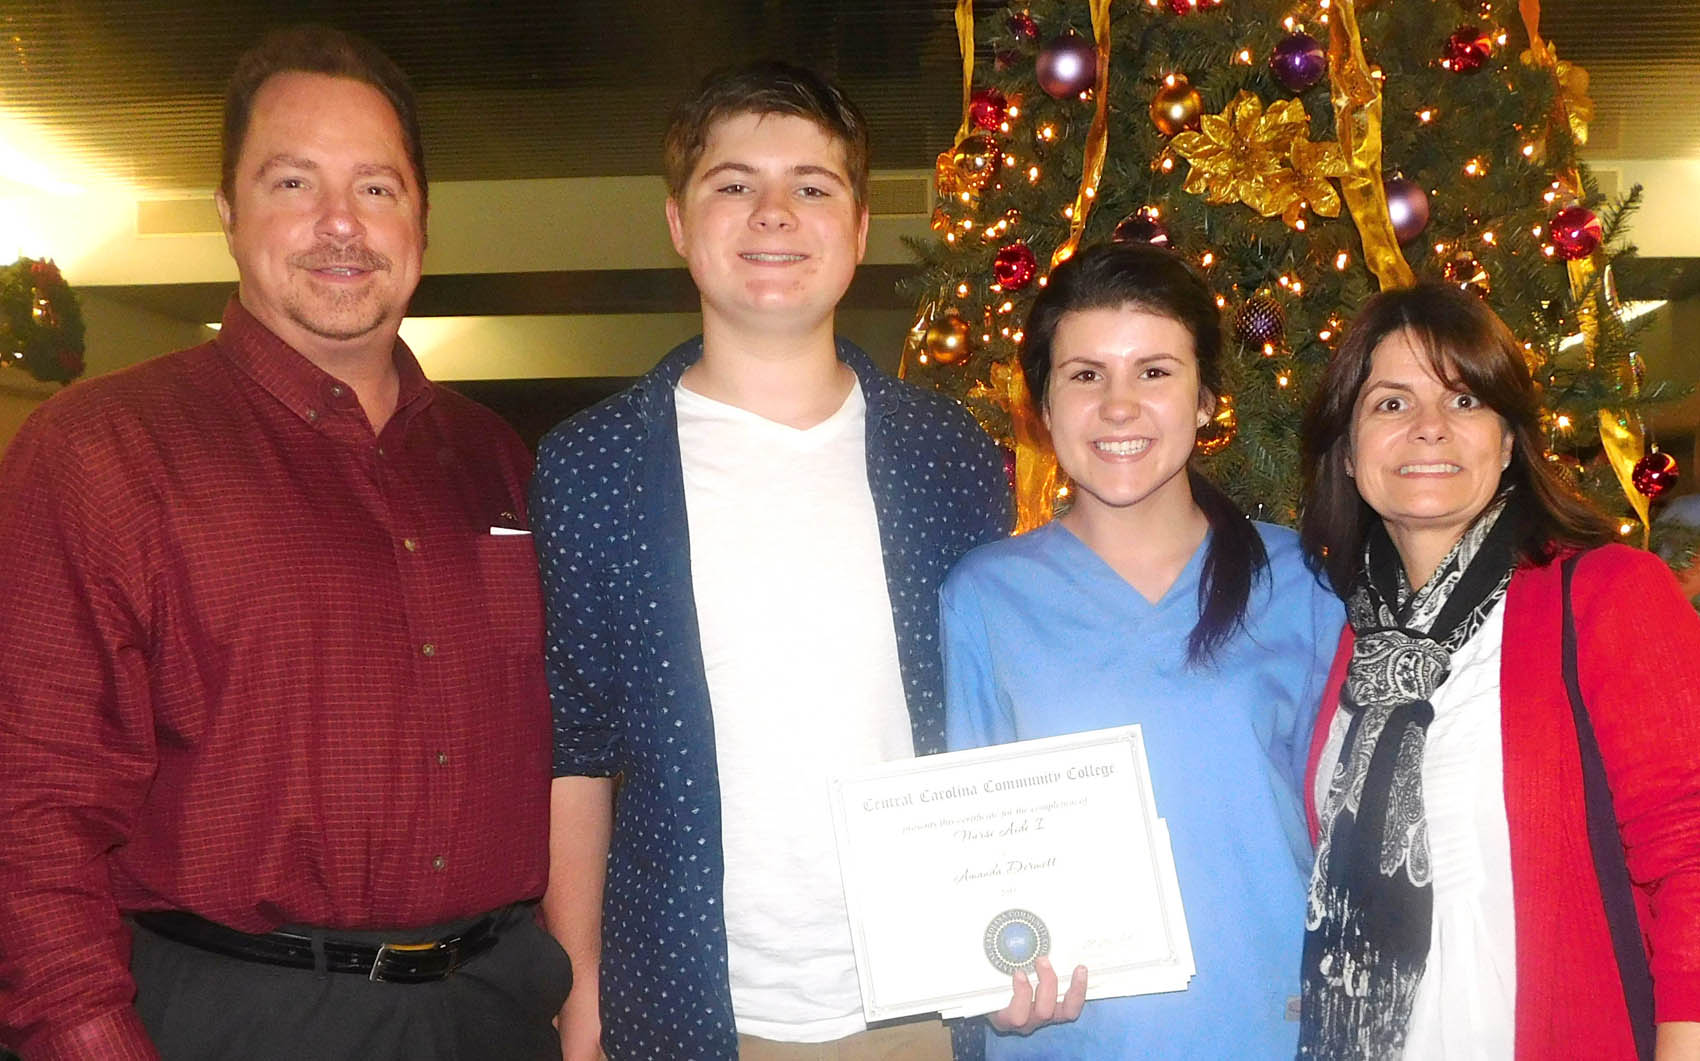 Click to enlarge,  Amanda Dermott, of Dunn, and her family celebrate her Nurse Aide I certification at the Central Carolina Community College Continuing Education medical program graduation. 'Tonight is great. It's the start of my nursing career,' said Dermott. The graduation event was held Dec. 10 at the Dennis A. Wicker Civic Center in Sanford. For more information about Continuing Education medial programs, call the CCCC Economic and Community Development Division Student Support Center at (919) 718-7500.